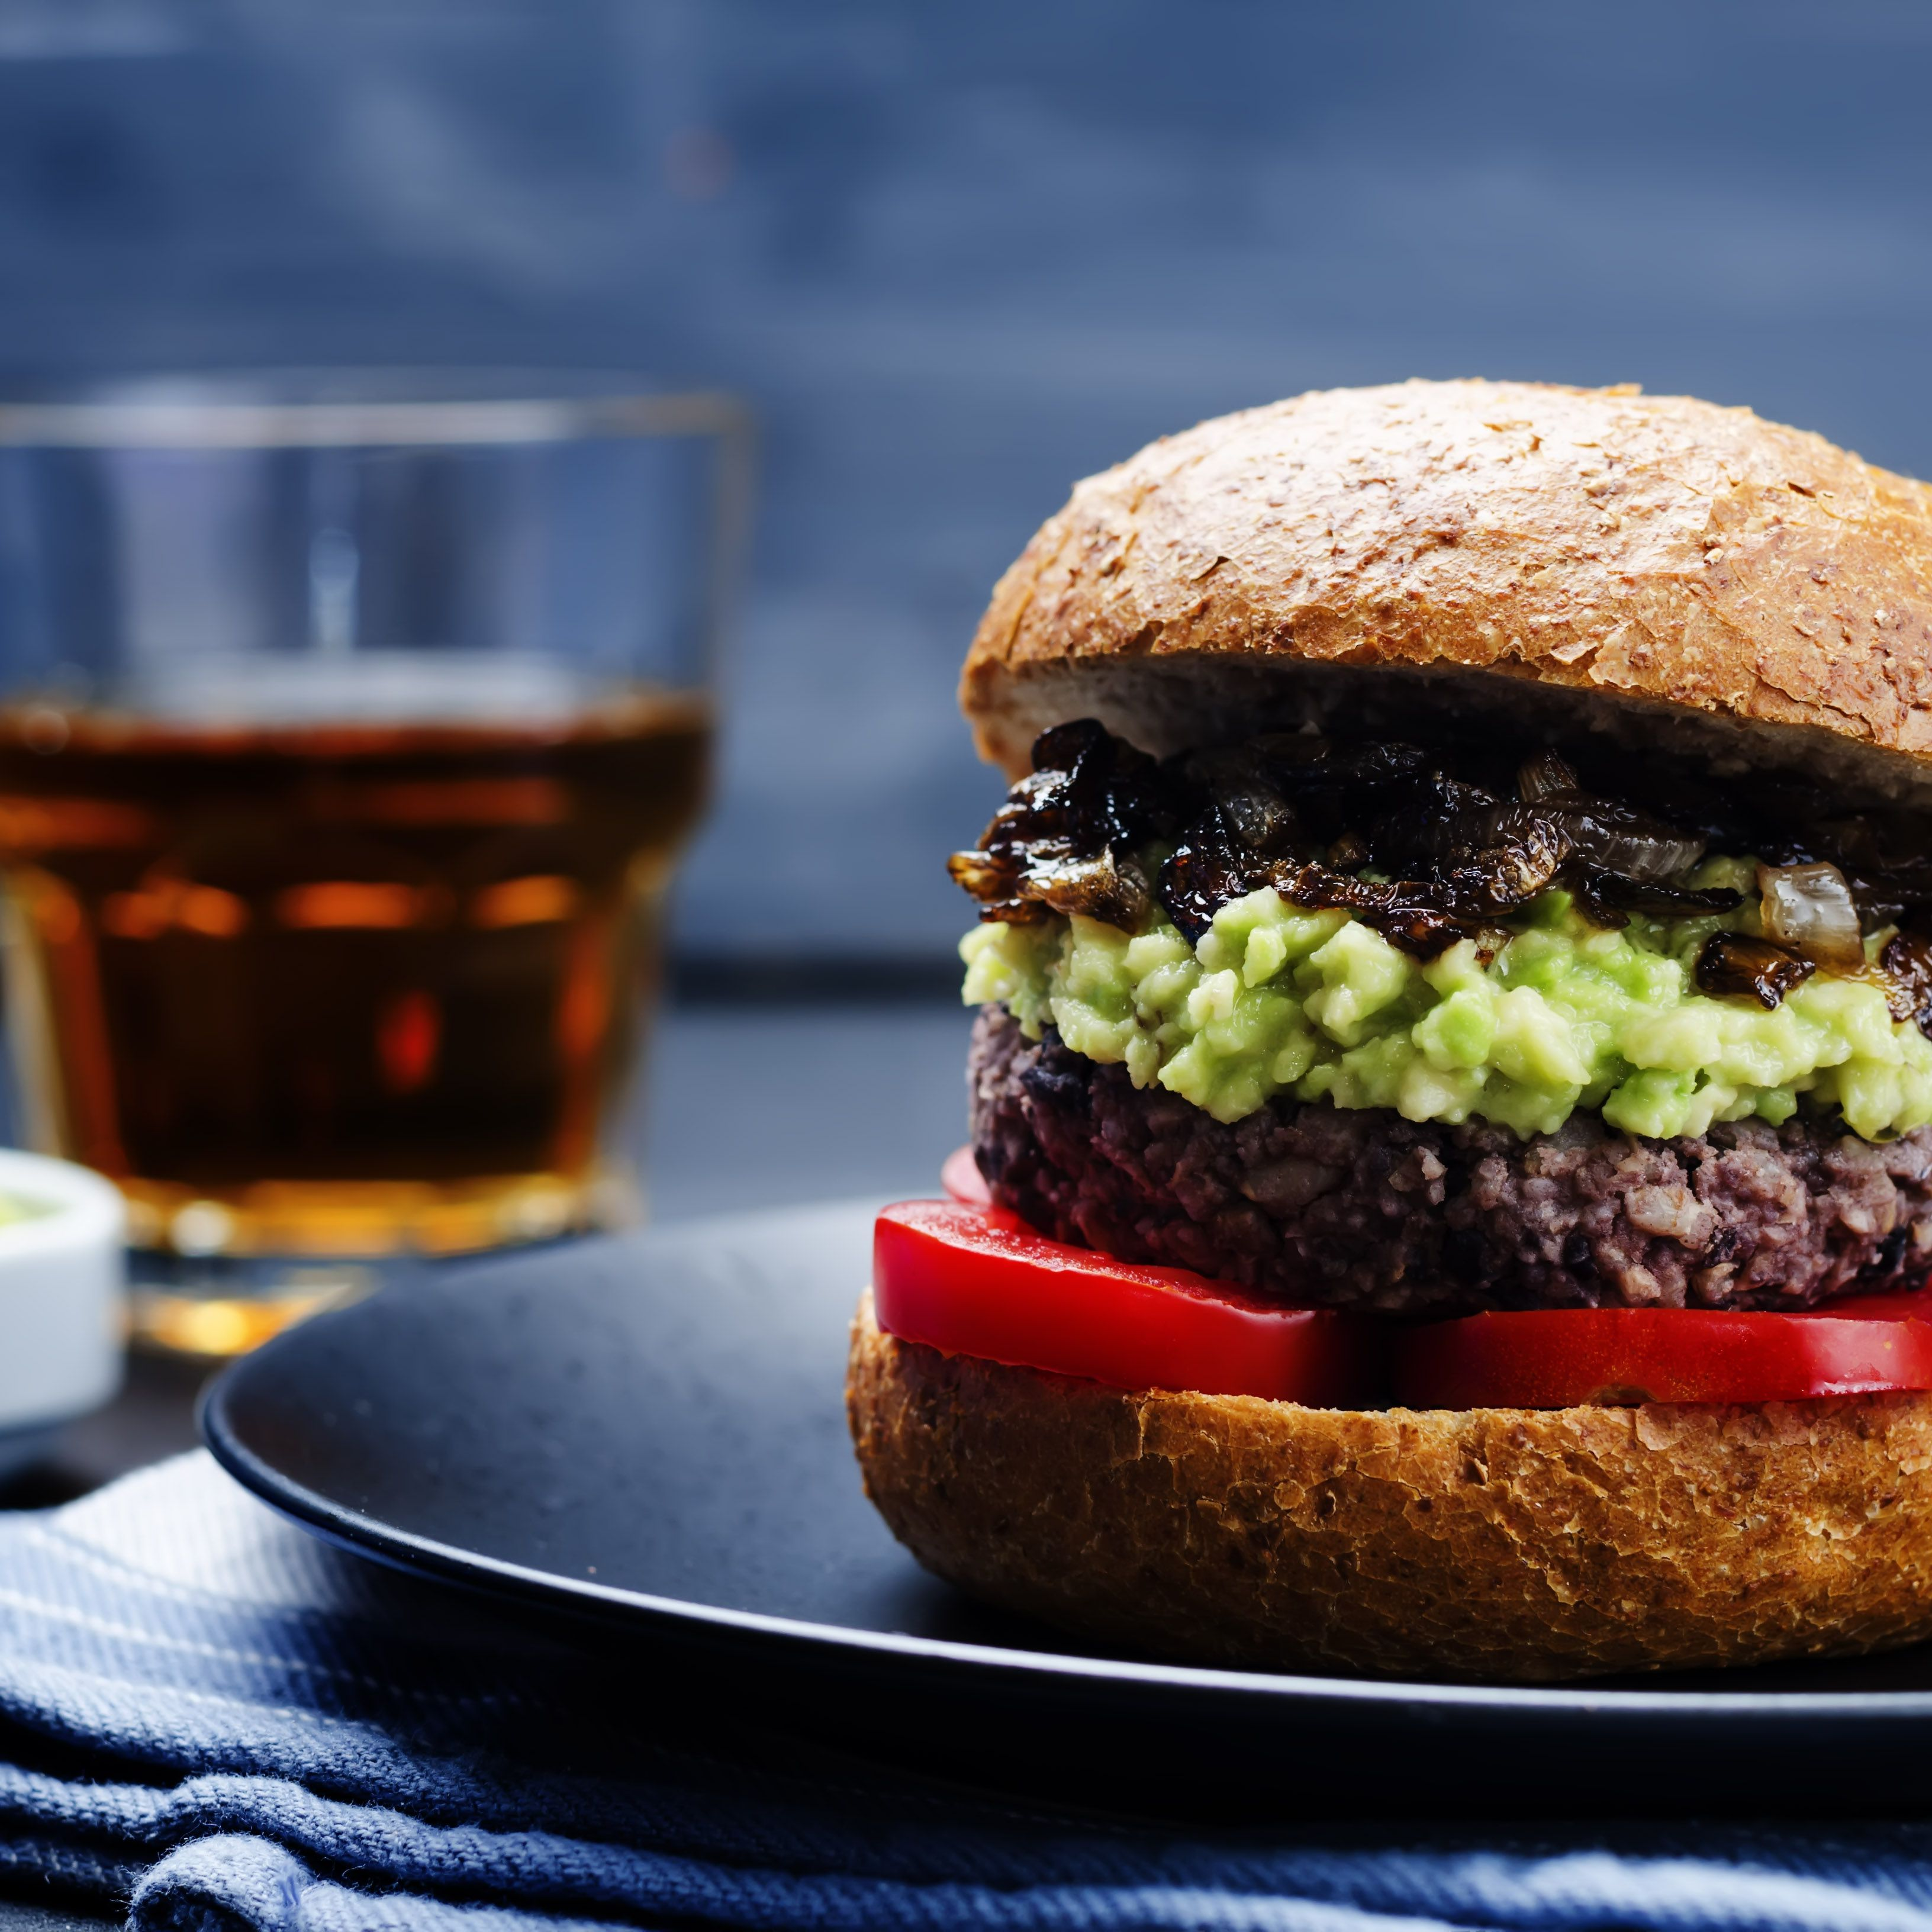 How To Make The Perfect Veggie Burger Binder To Use For Veggie Burgers